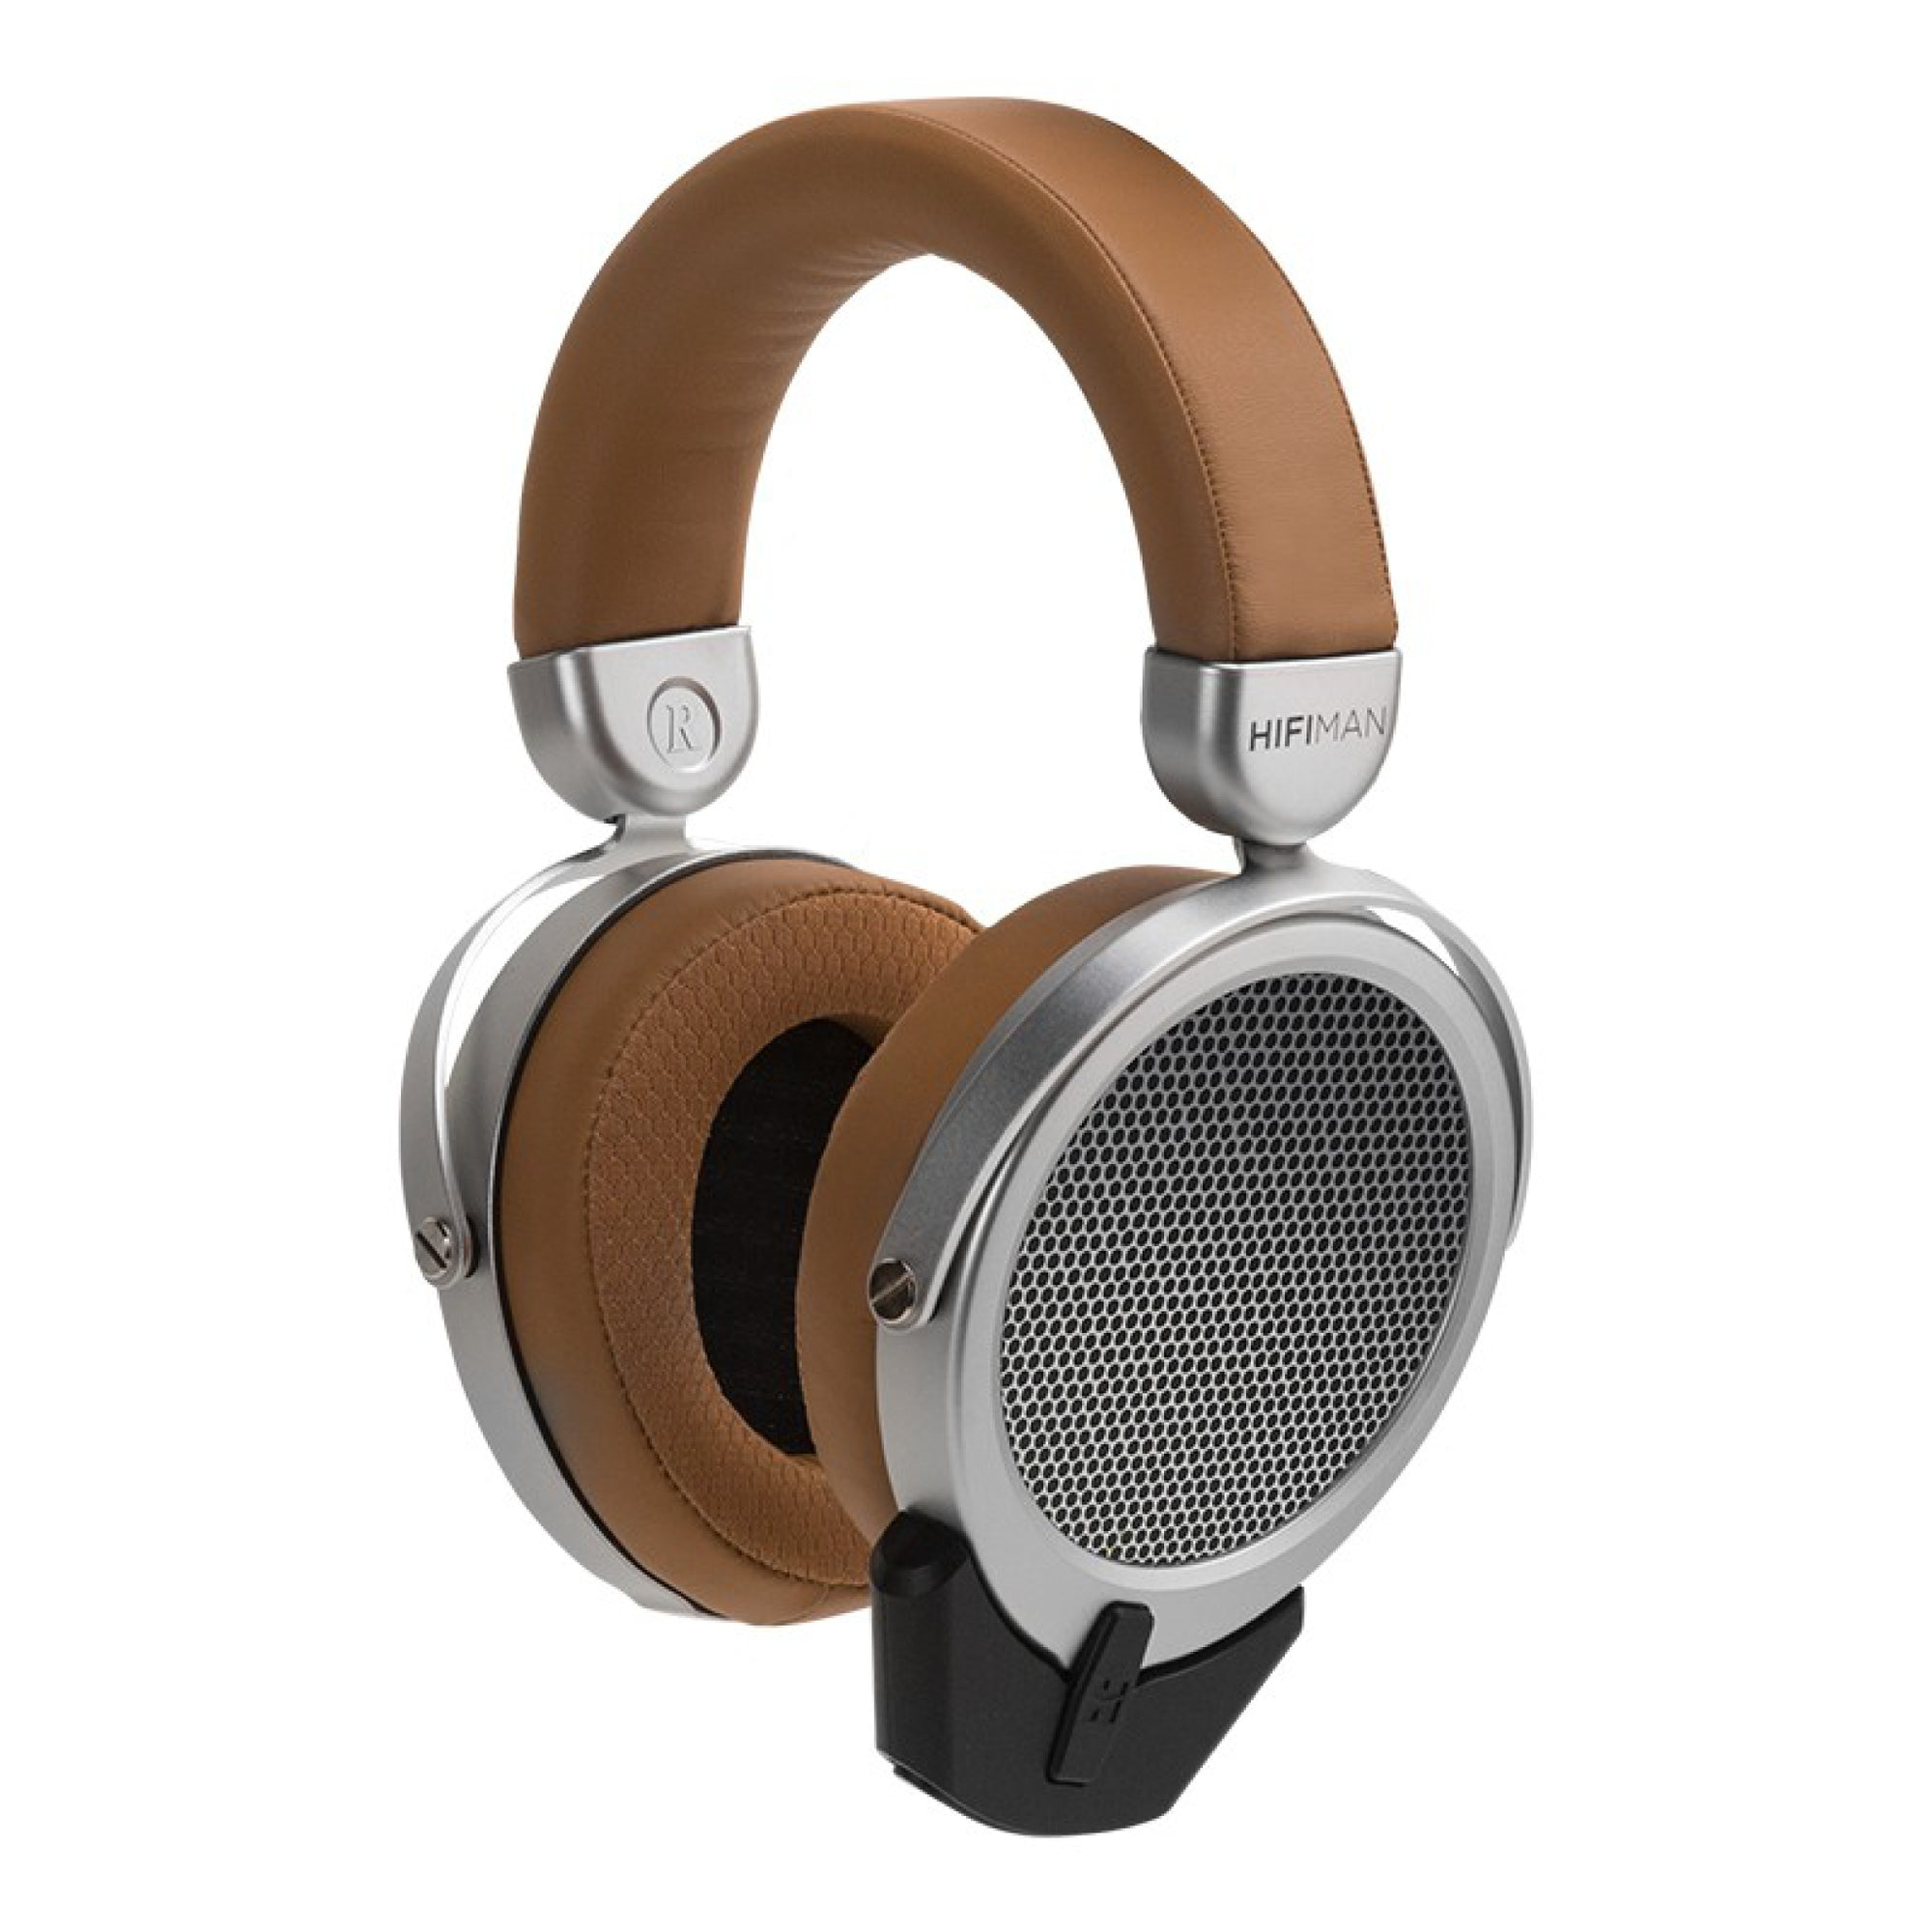 HIFIMAN Deva Over-Ear Full-Size Open-Back Planar Magnetic Headphone with Bluetooth Dongle/Receiver